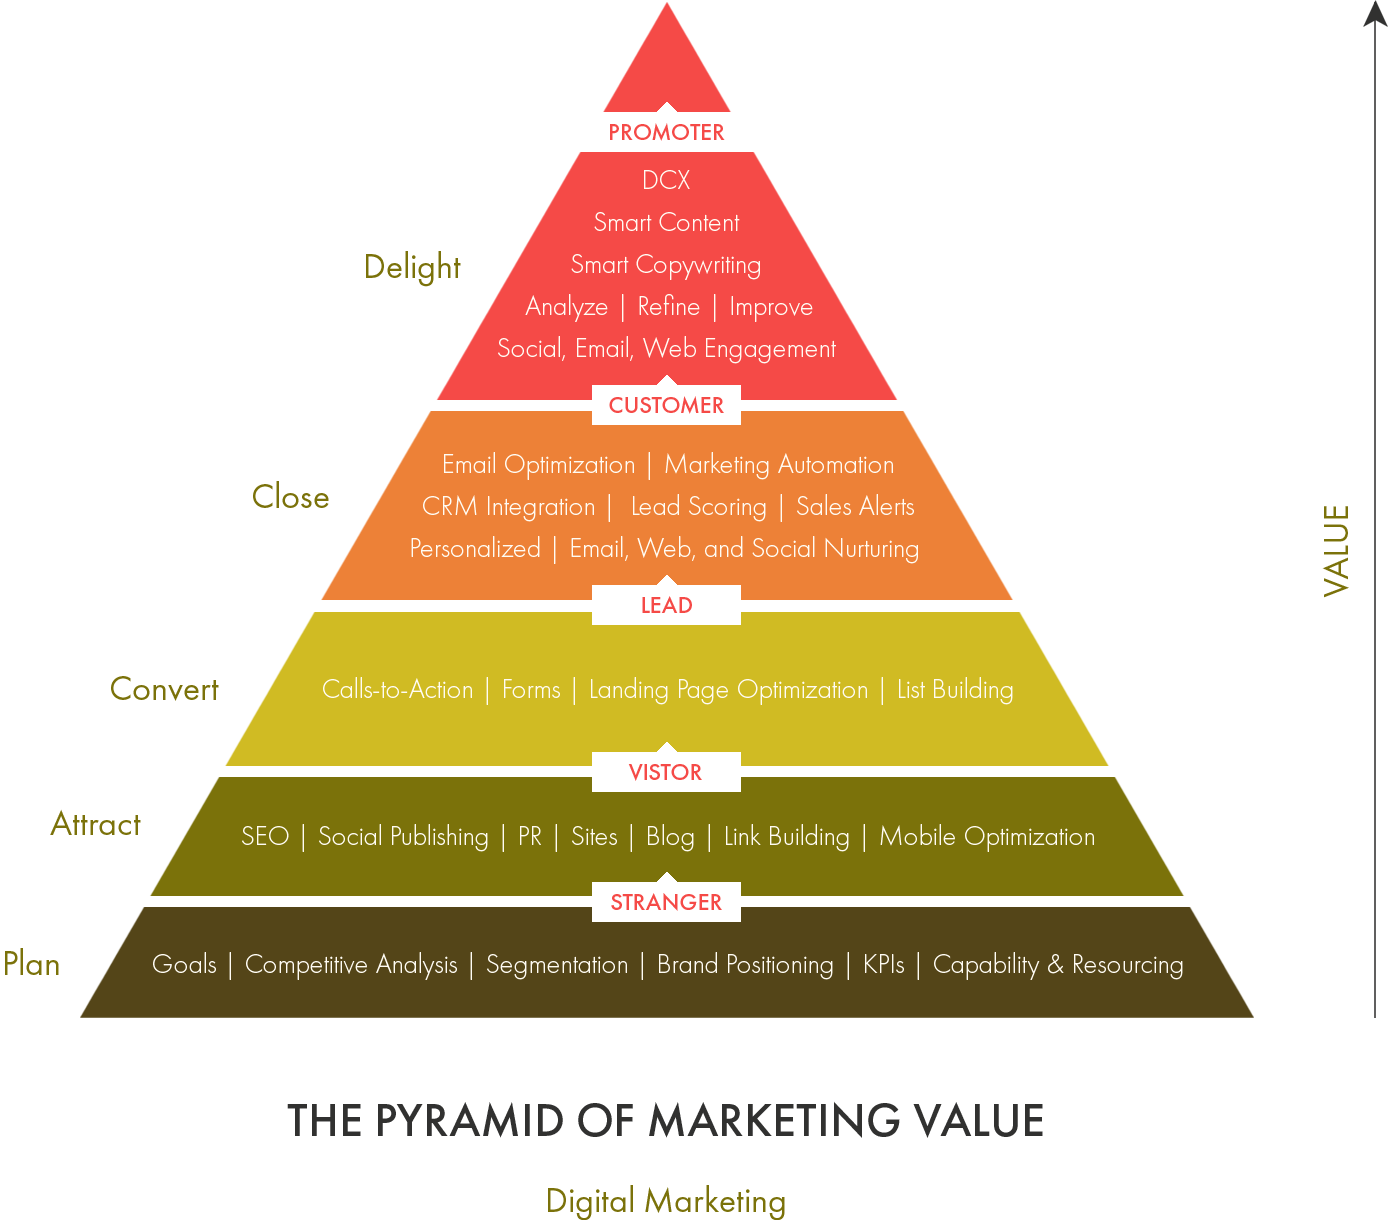 The Pyramid of Marketing Value - Digital Marketing